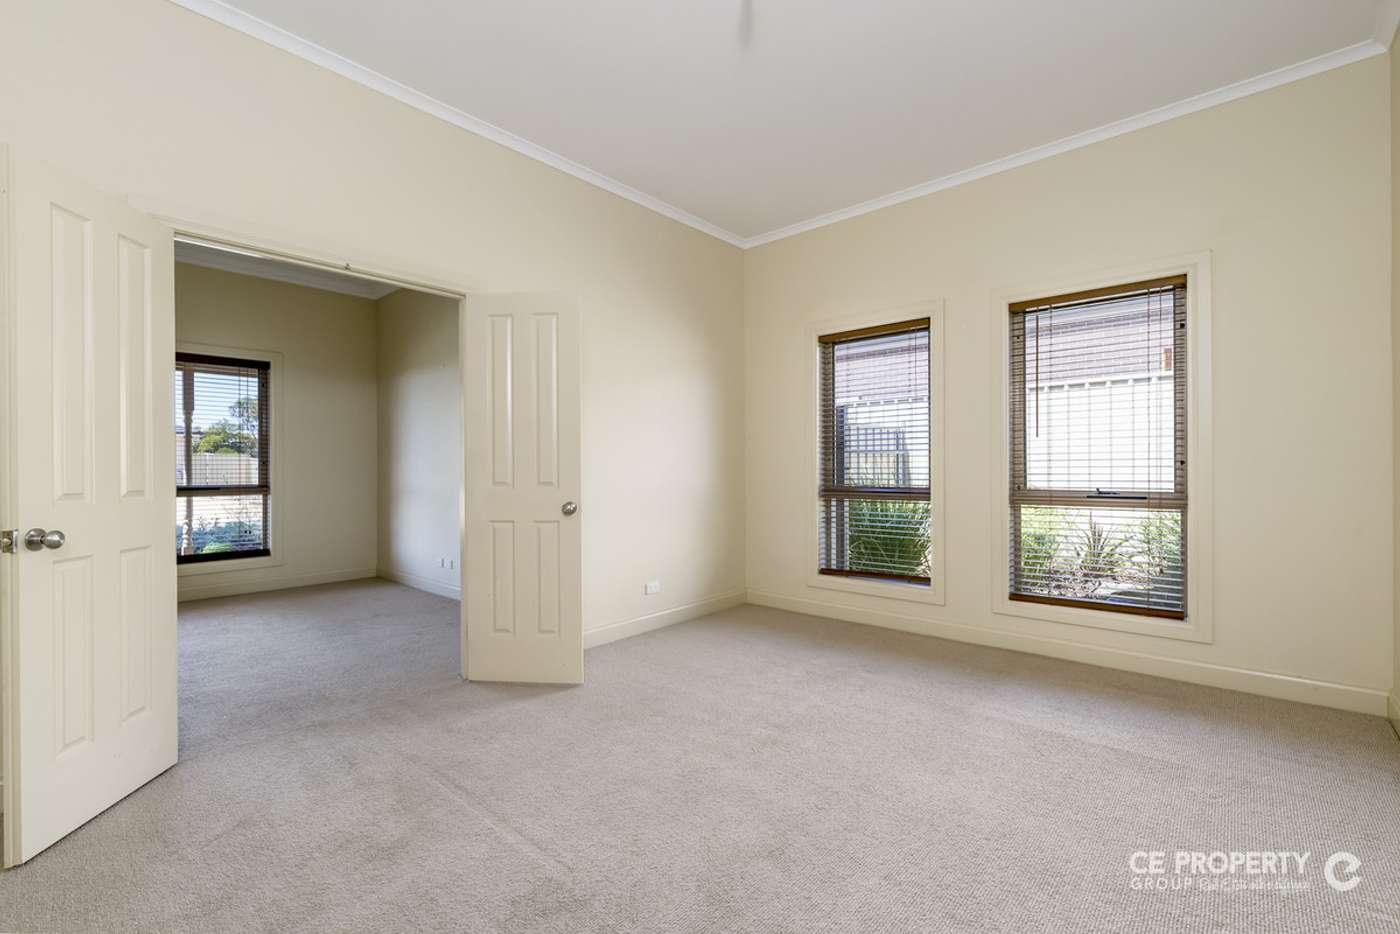 Sixth view of Homely house listing, 26 Ruby Drive, Mannum SA 5238